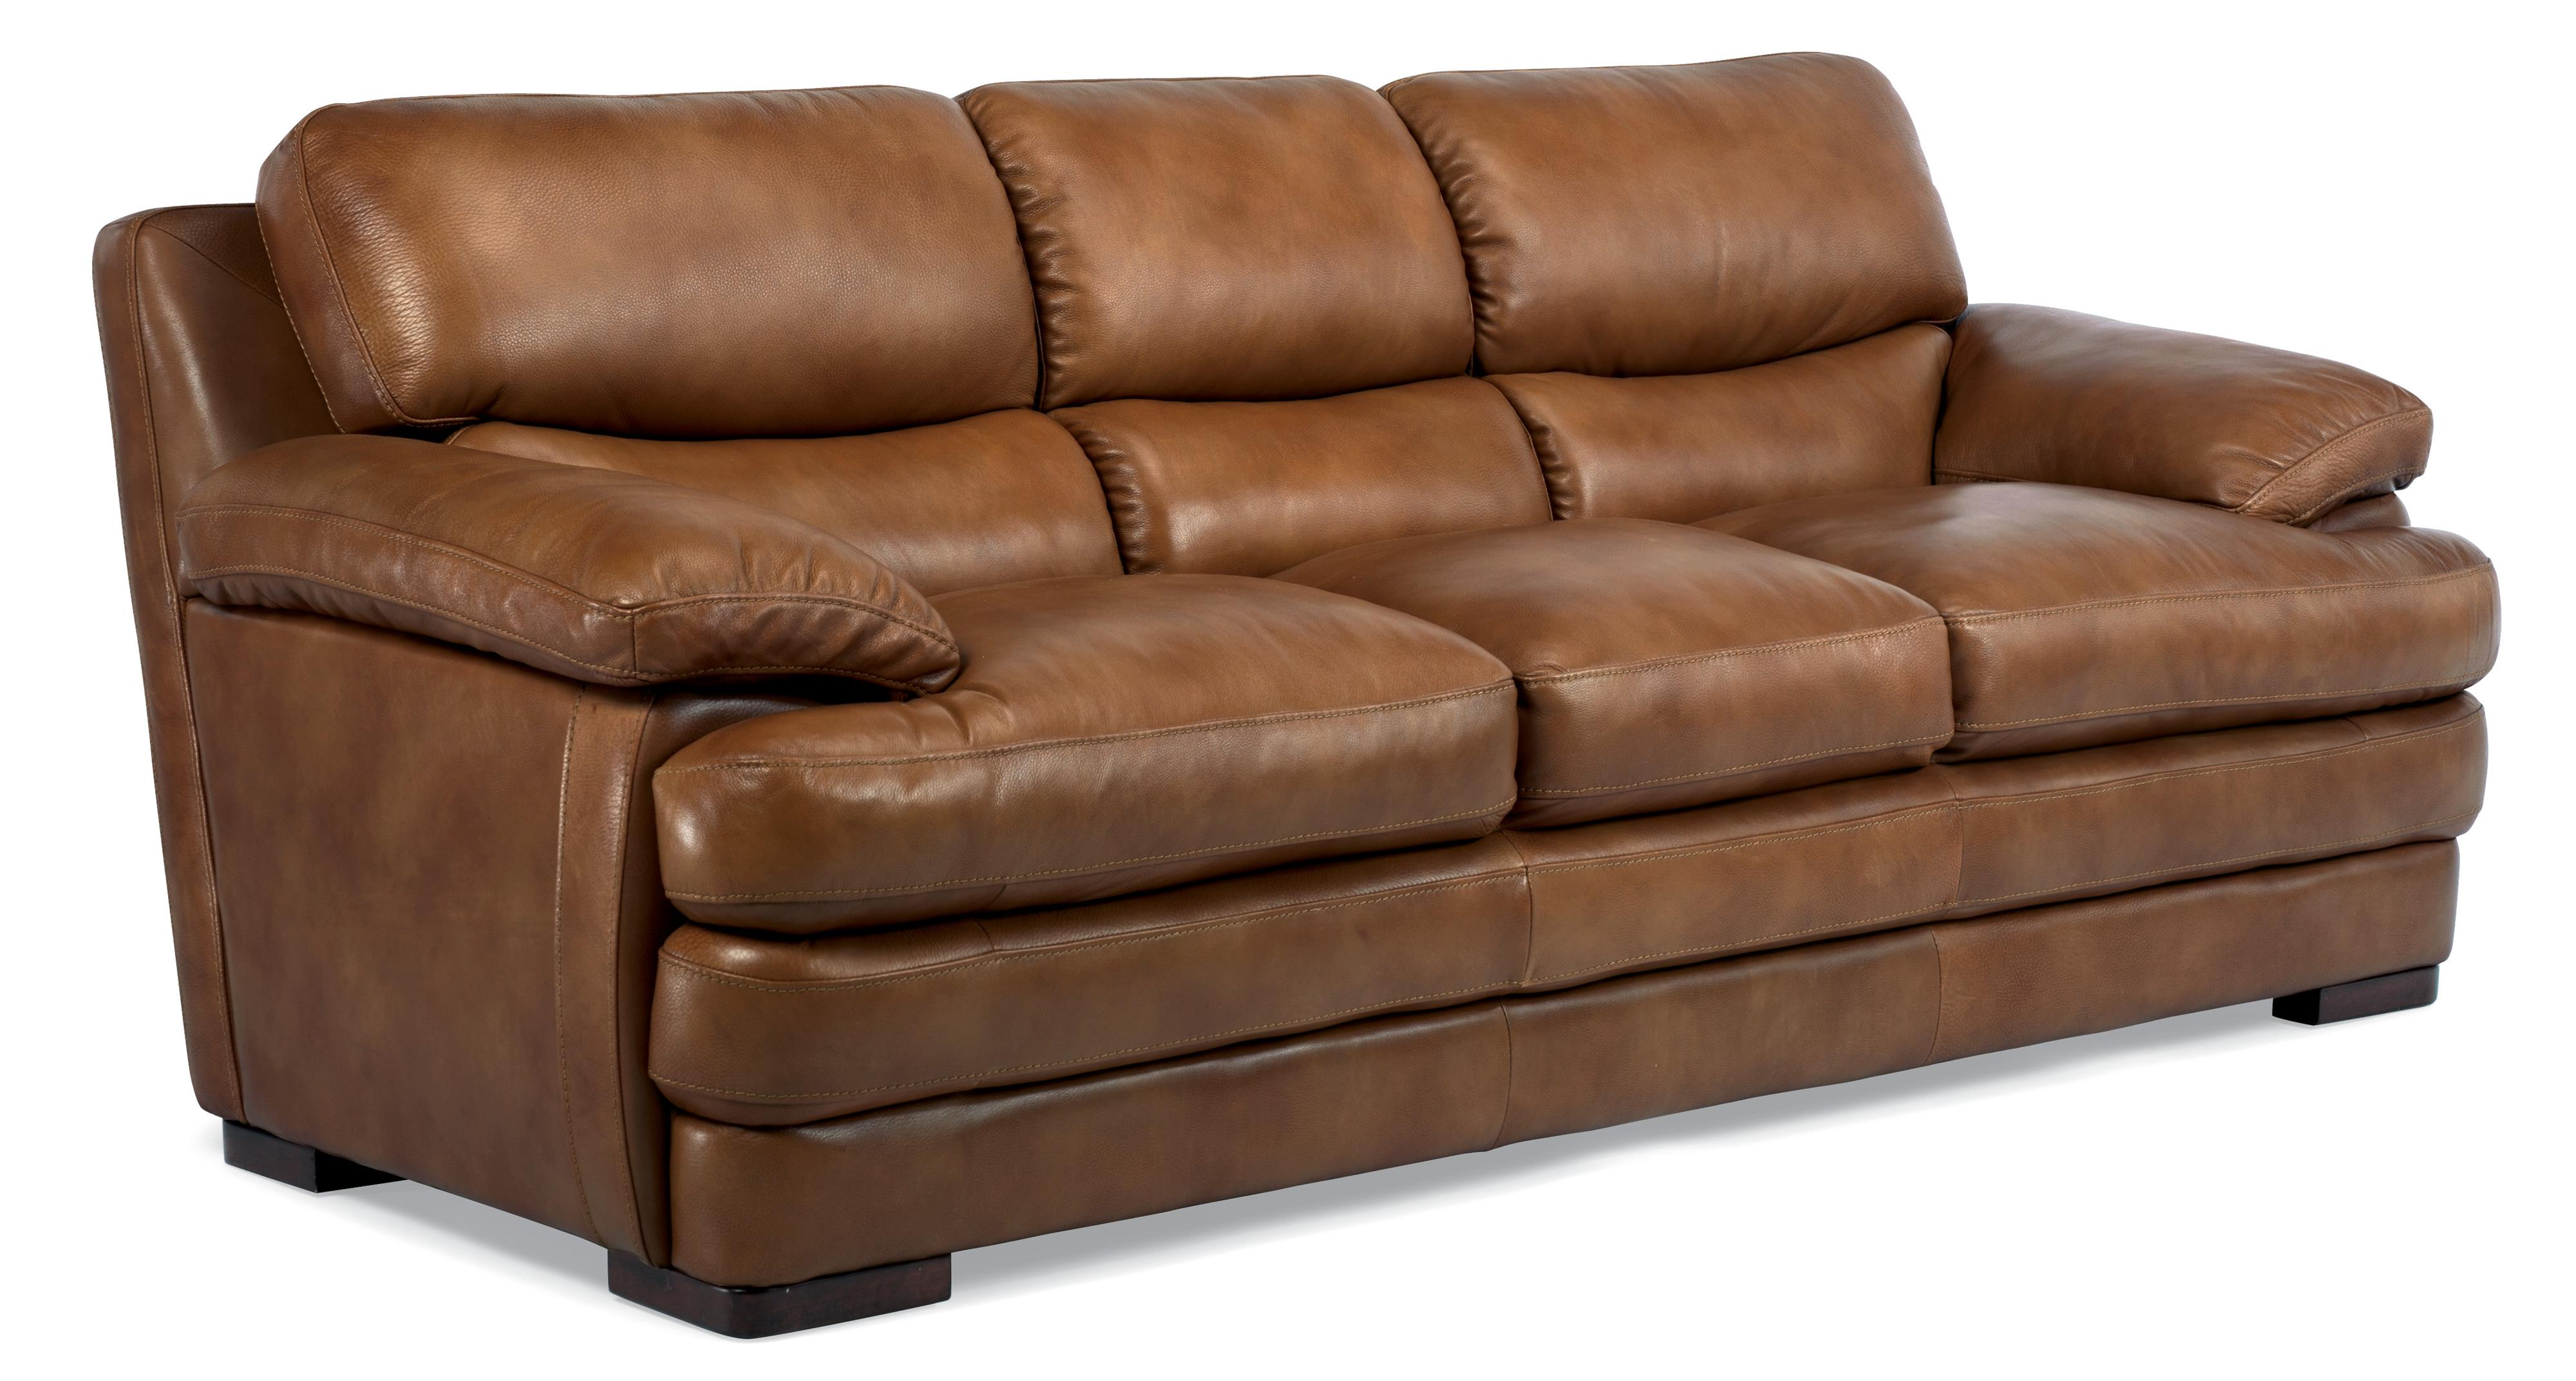 best of flexsteel leather sofa picture-Fantastic Flexsteel Leather sofa Architecture